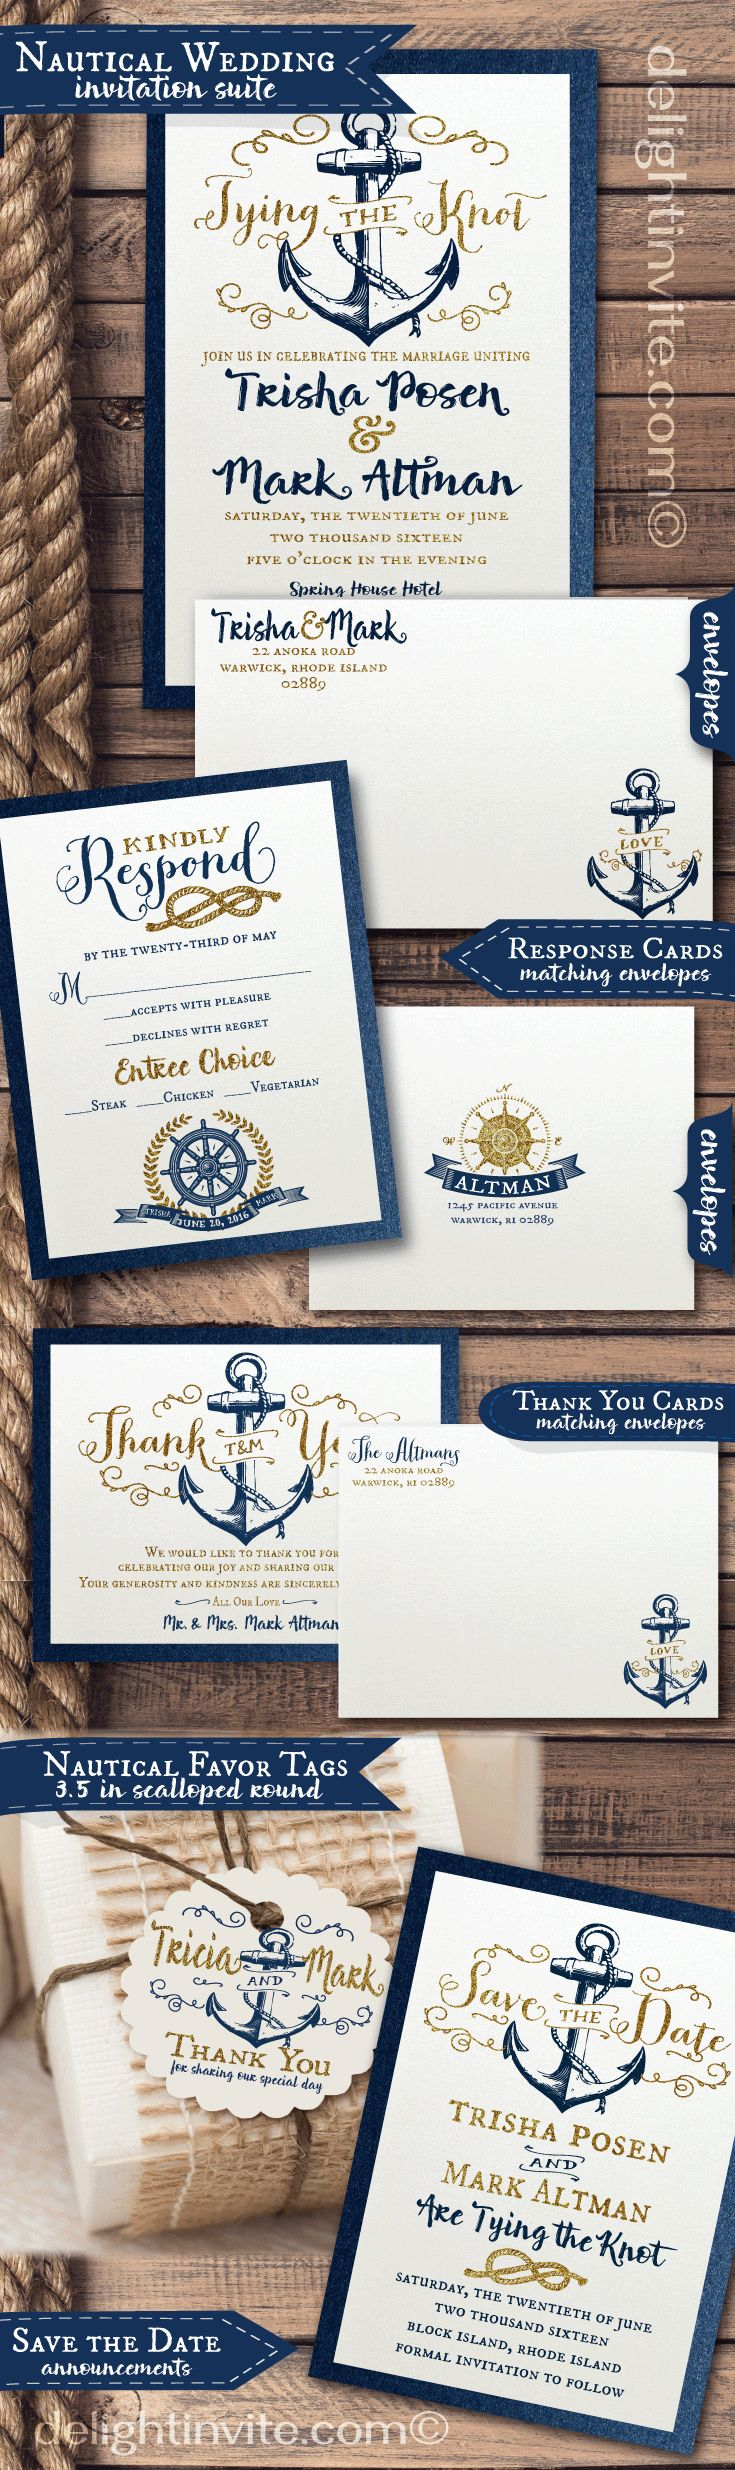 Best 25 Nautical wedding ideas – Nautical Theme Wedding Invitations